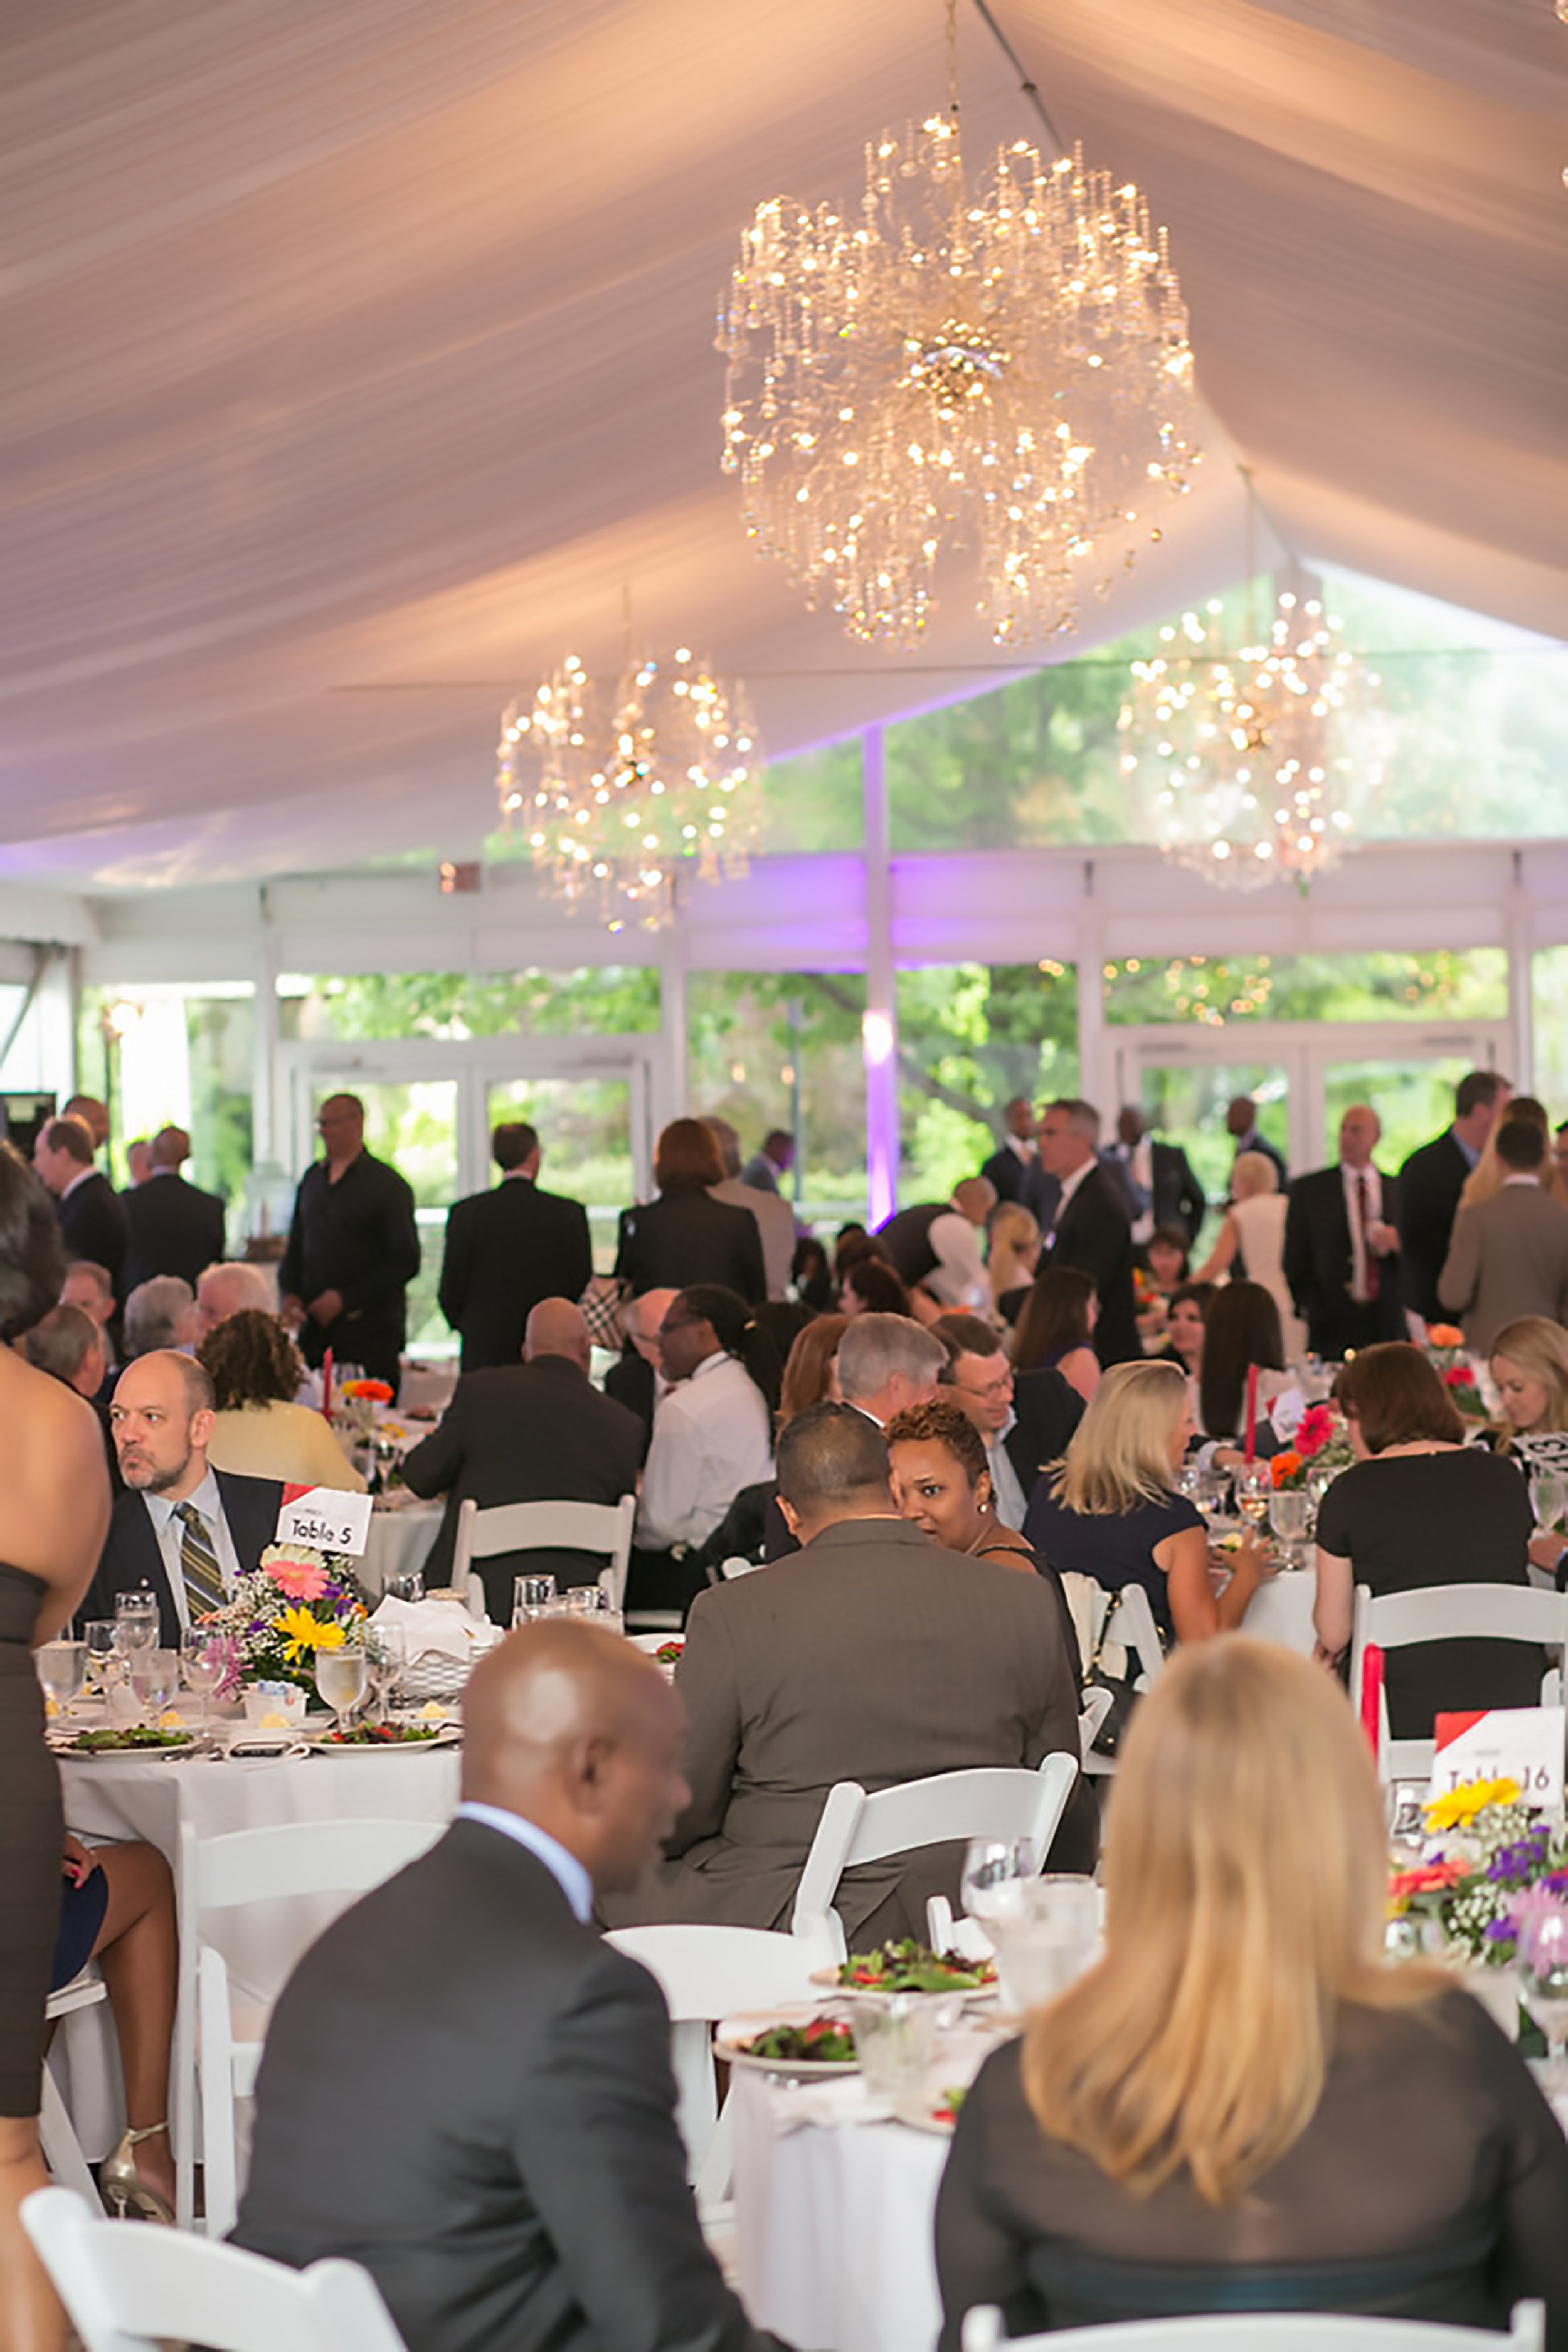 We had a tremendous turnout at the Gala in 2017 and a great time was had by all. We hope to see you again this year!